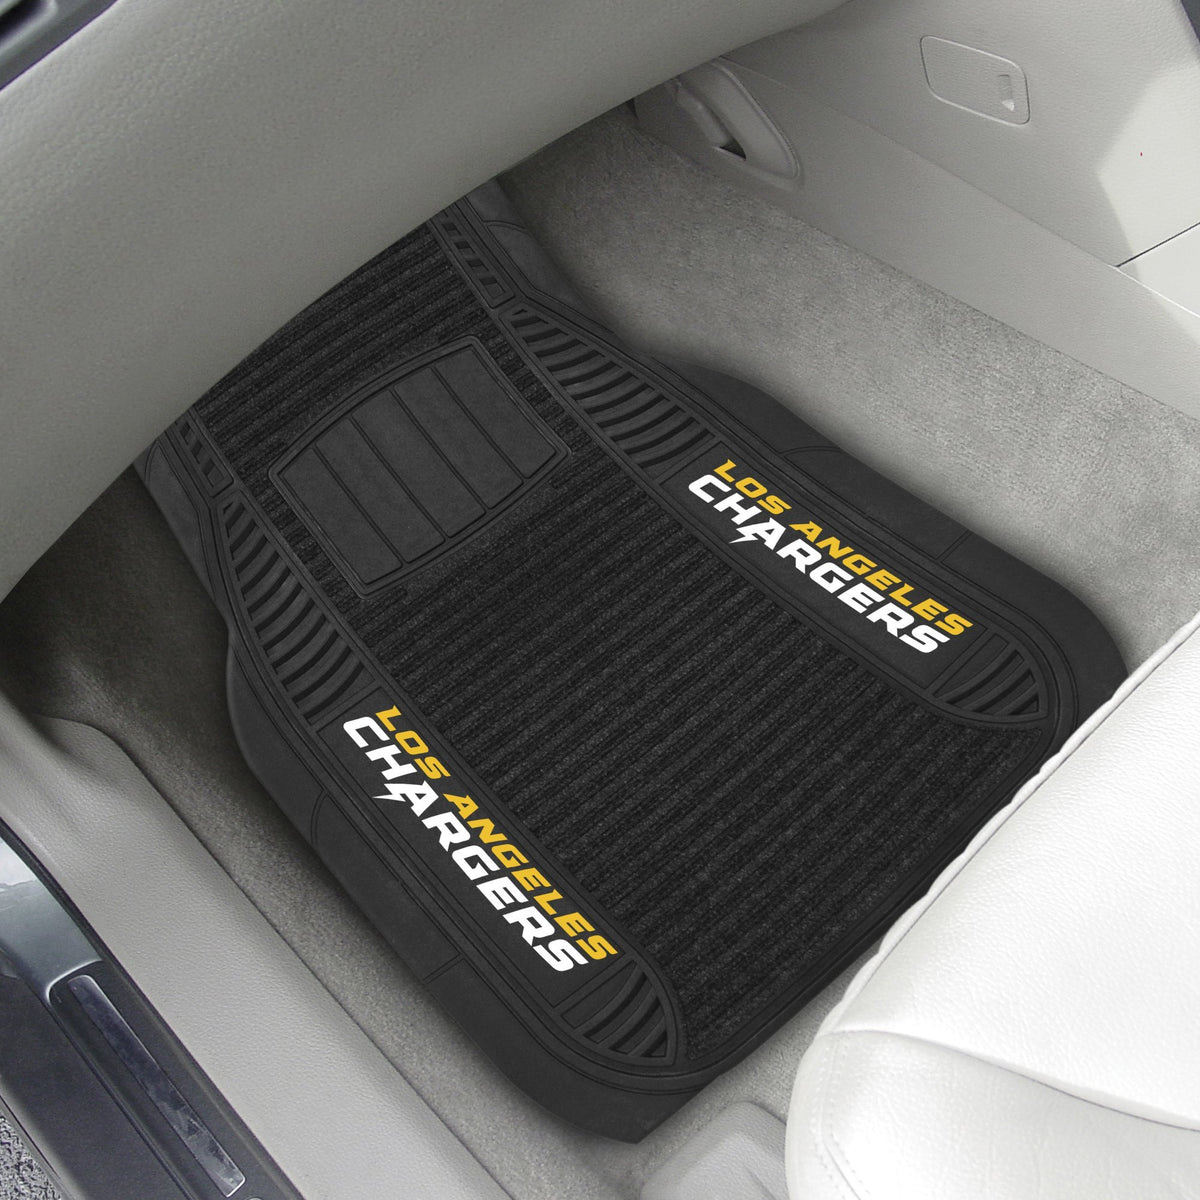 "NFL - 2-pc Deluxe Car Mat Set, 21"" x 27"" NFL Mats, Front Car Mats, 2-pc Deluxe Car Mat Set, NFL, Auto Fan Mats Los Angeles Chargers"